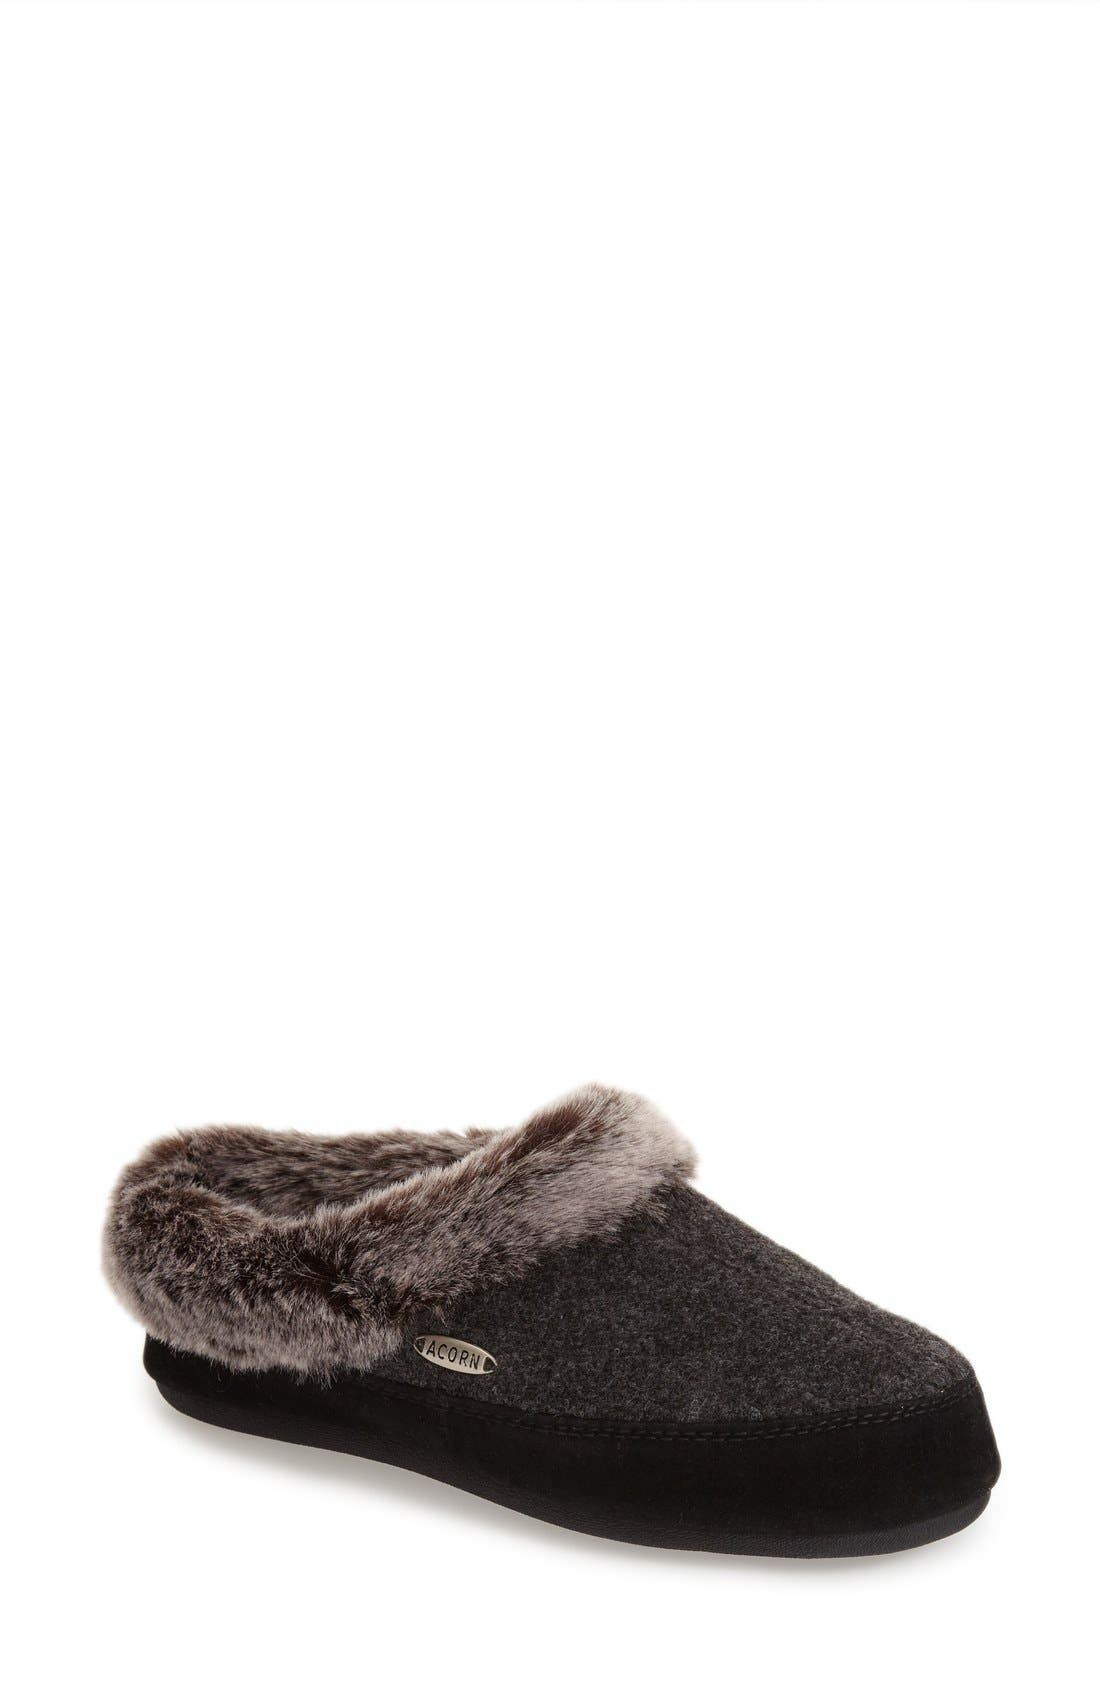 Alternate Image 1 Selected - Acorn 'Cloud Chilla Scuff' Slipper (Women)